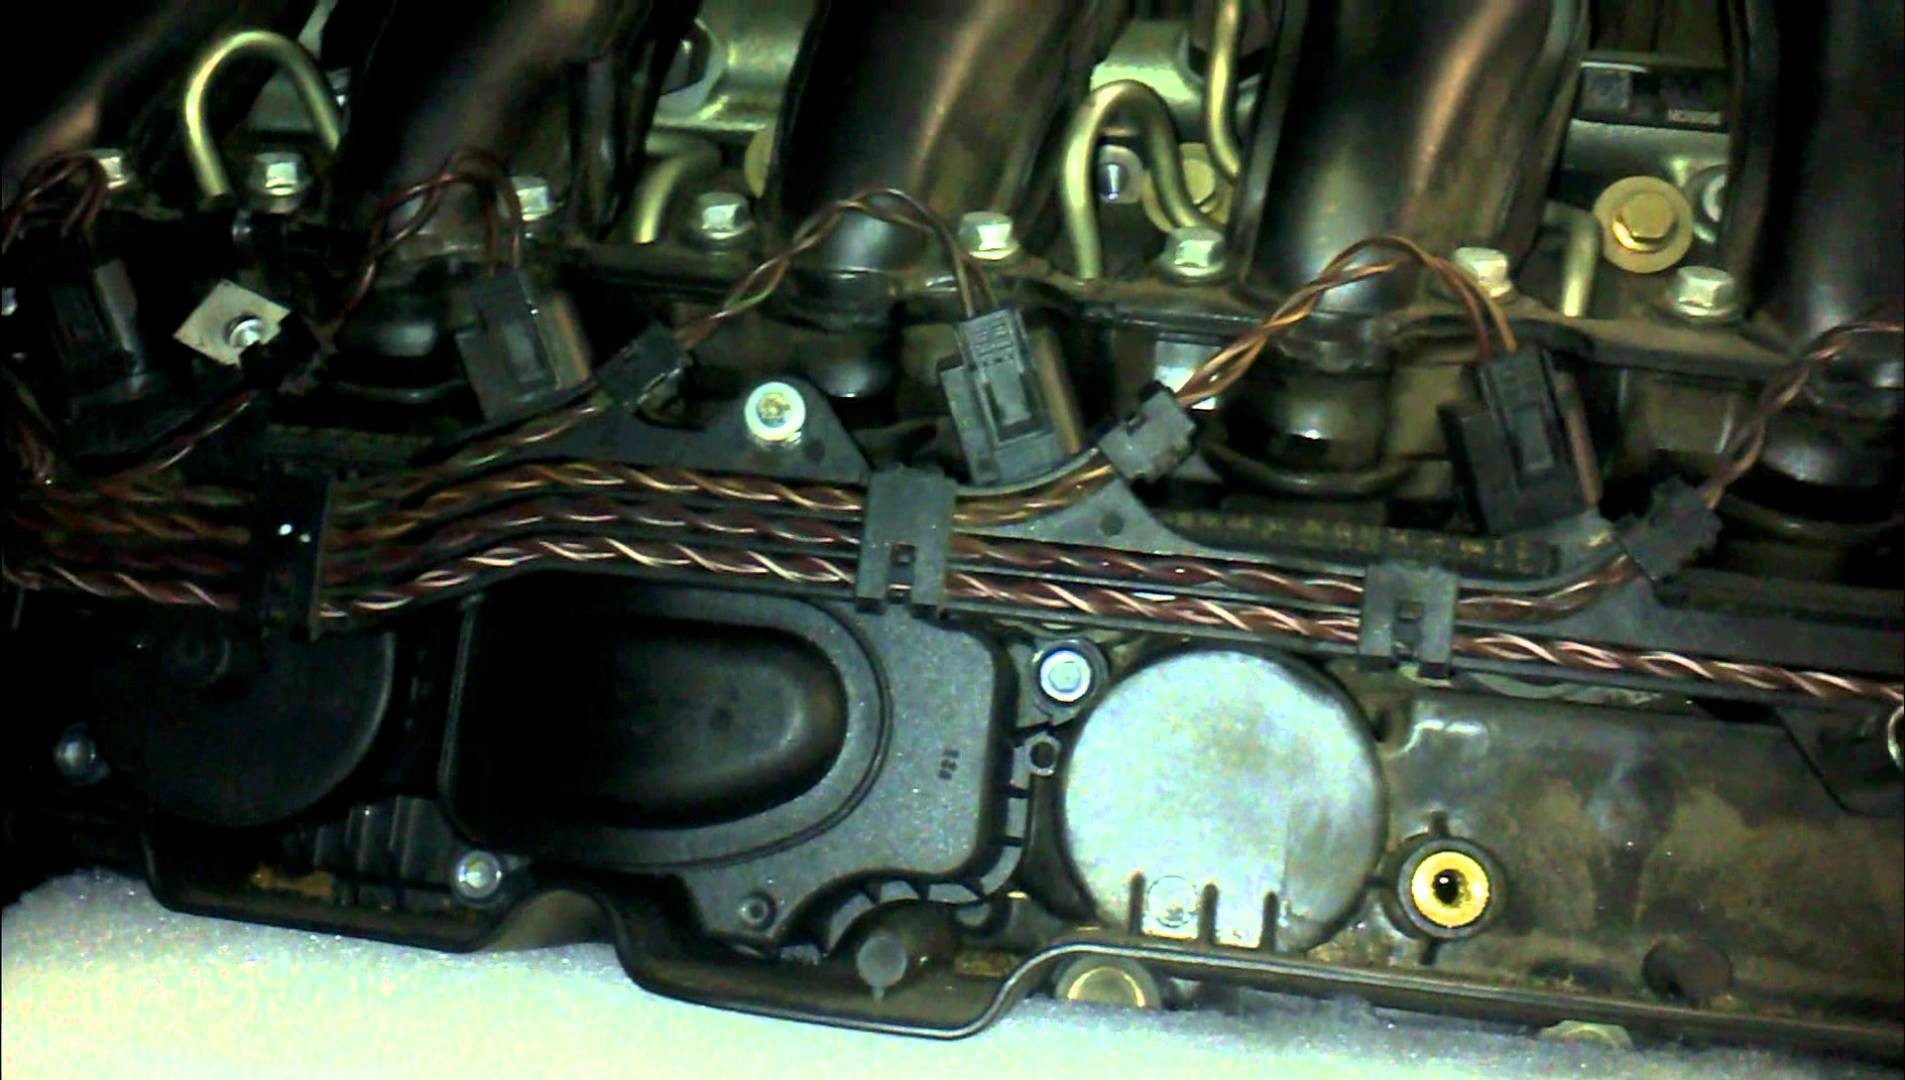 Engine Wiring Harness Diagram Further Pcv Valve Hose For A 2001 Camaro